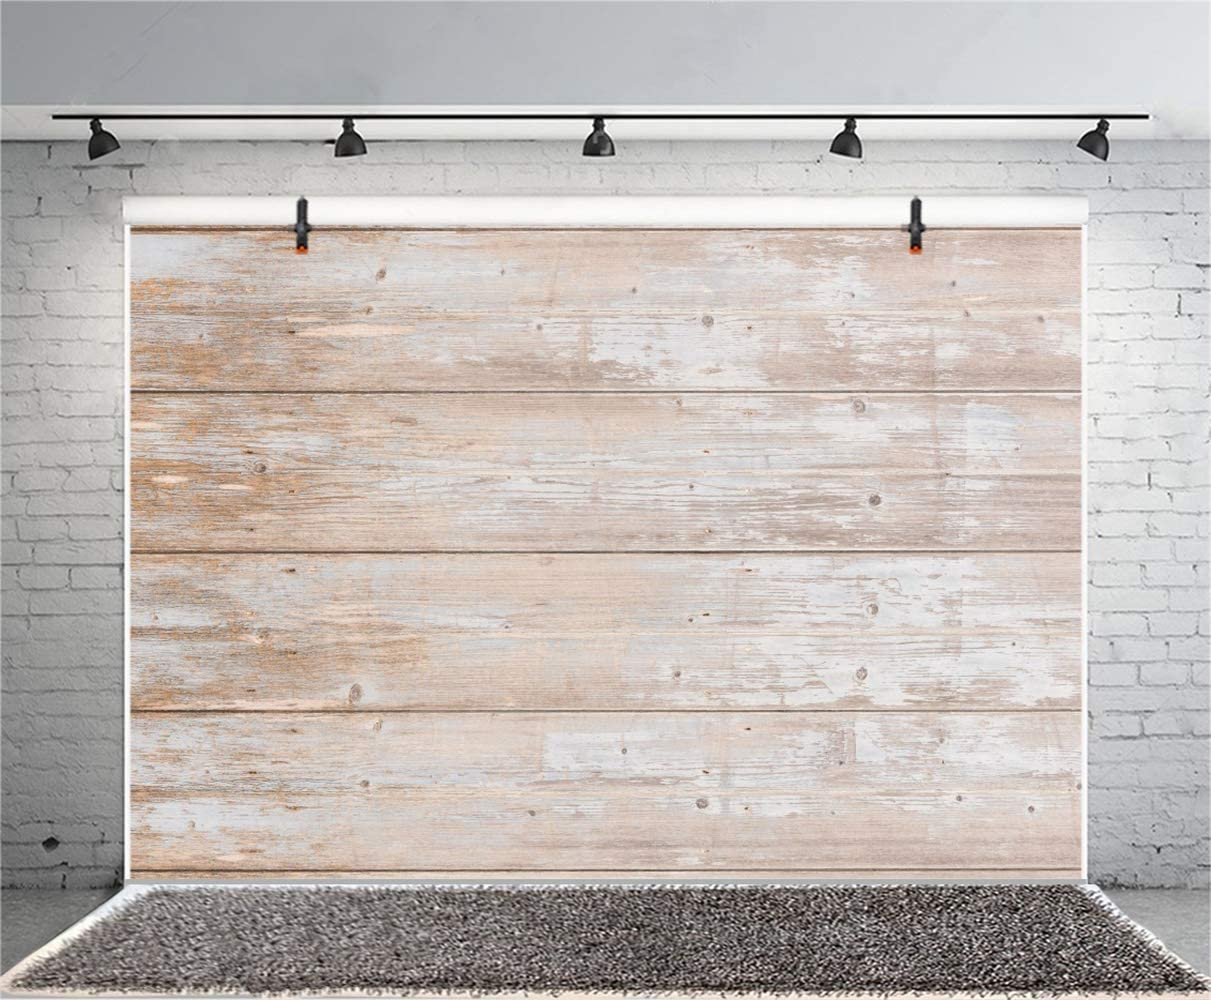 Polyester 7x5ft Grunge Faded Lateral-Cut Wood Texture Plank Photography Background Rustic Wooden Board Backdrop Children Adult Pets Personal Portrait Shoot Wallpaper Live Show